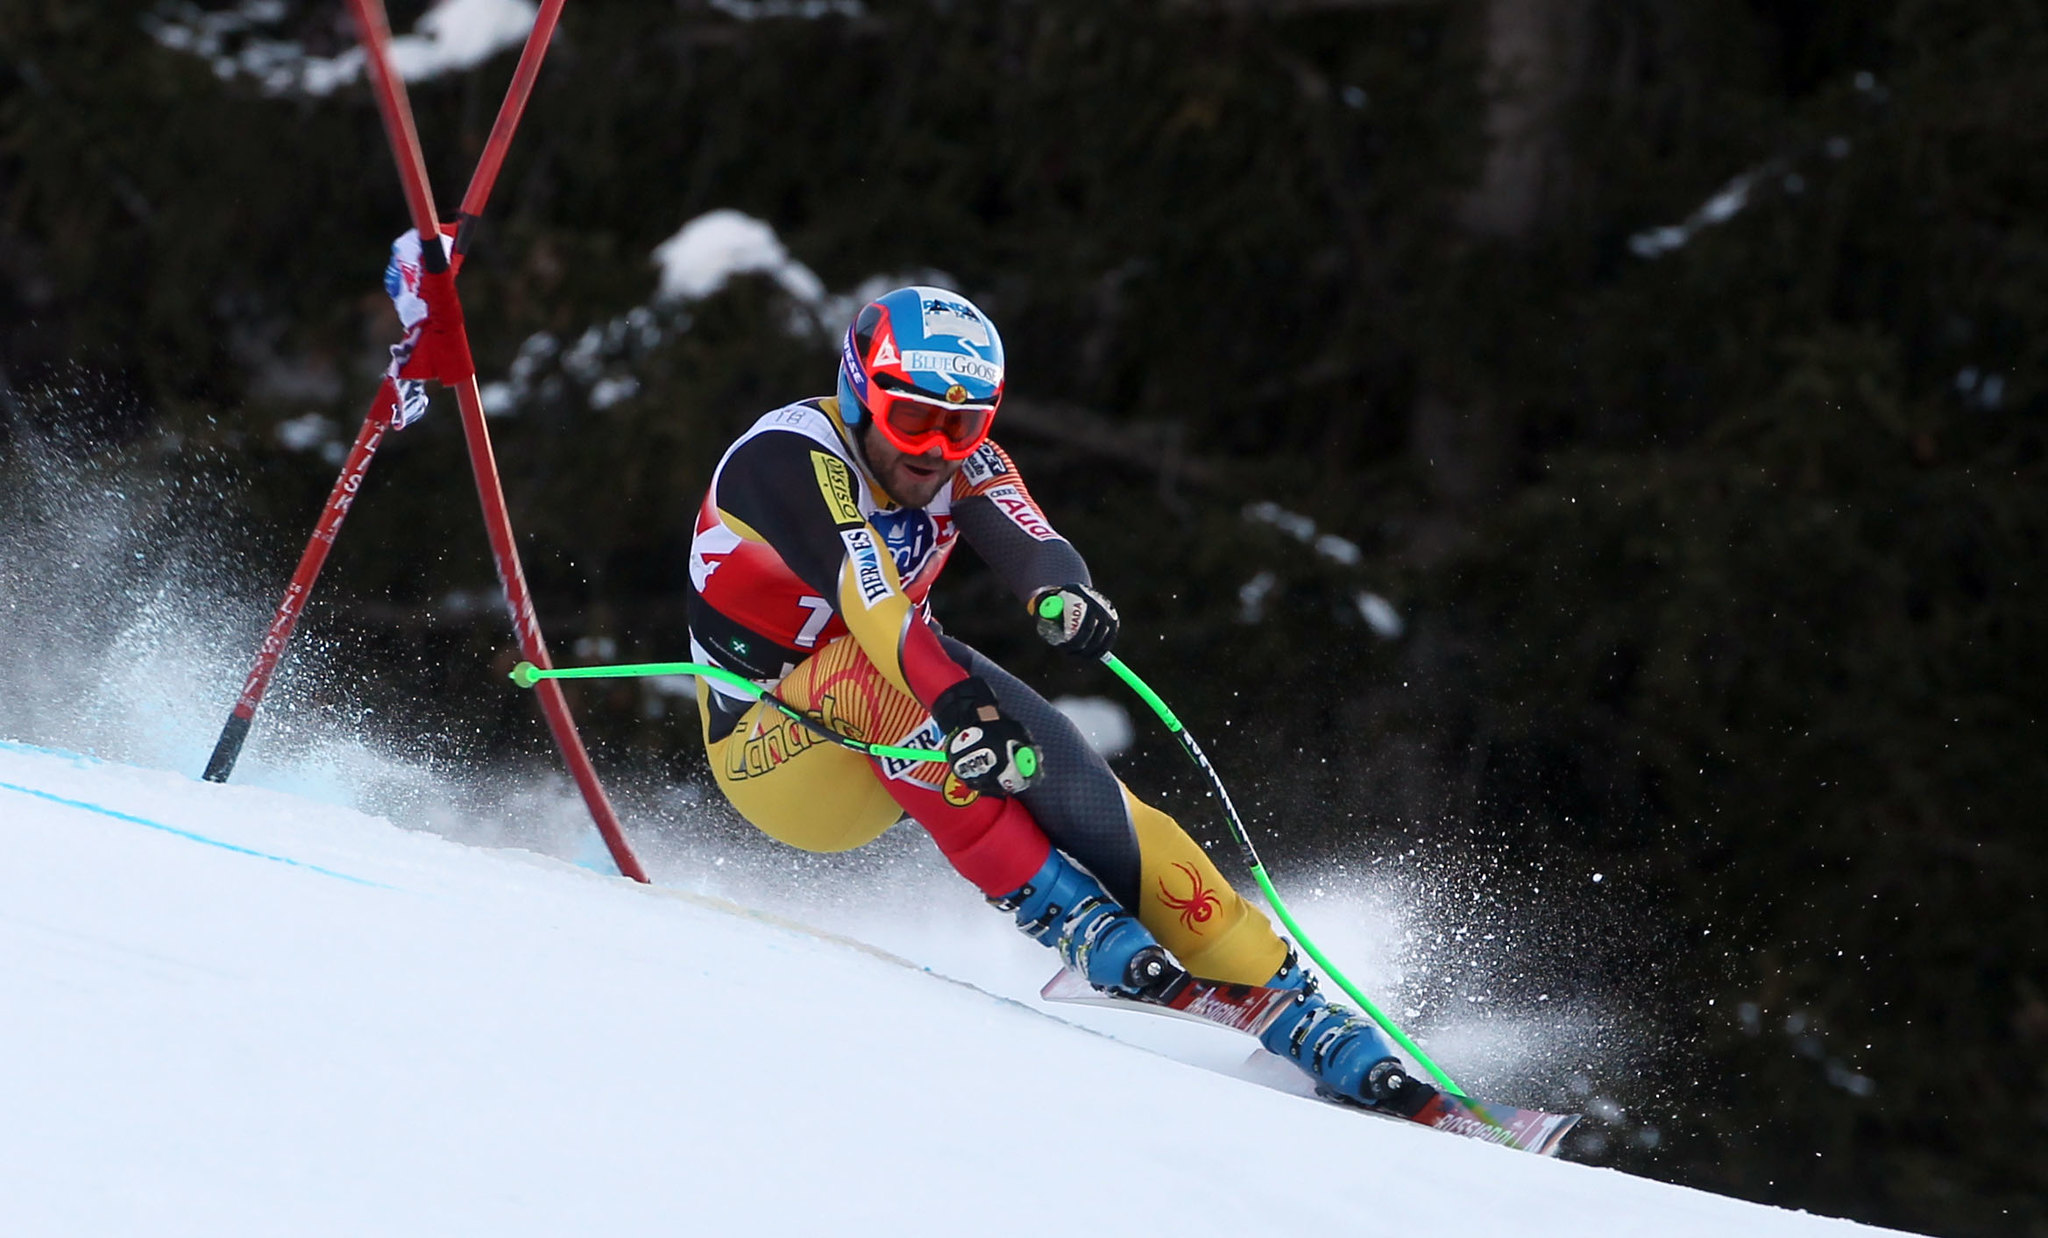 Jan Hudec stays focused in Bormio, Italy, during a World Cup downhill.